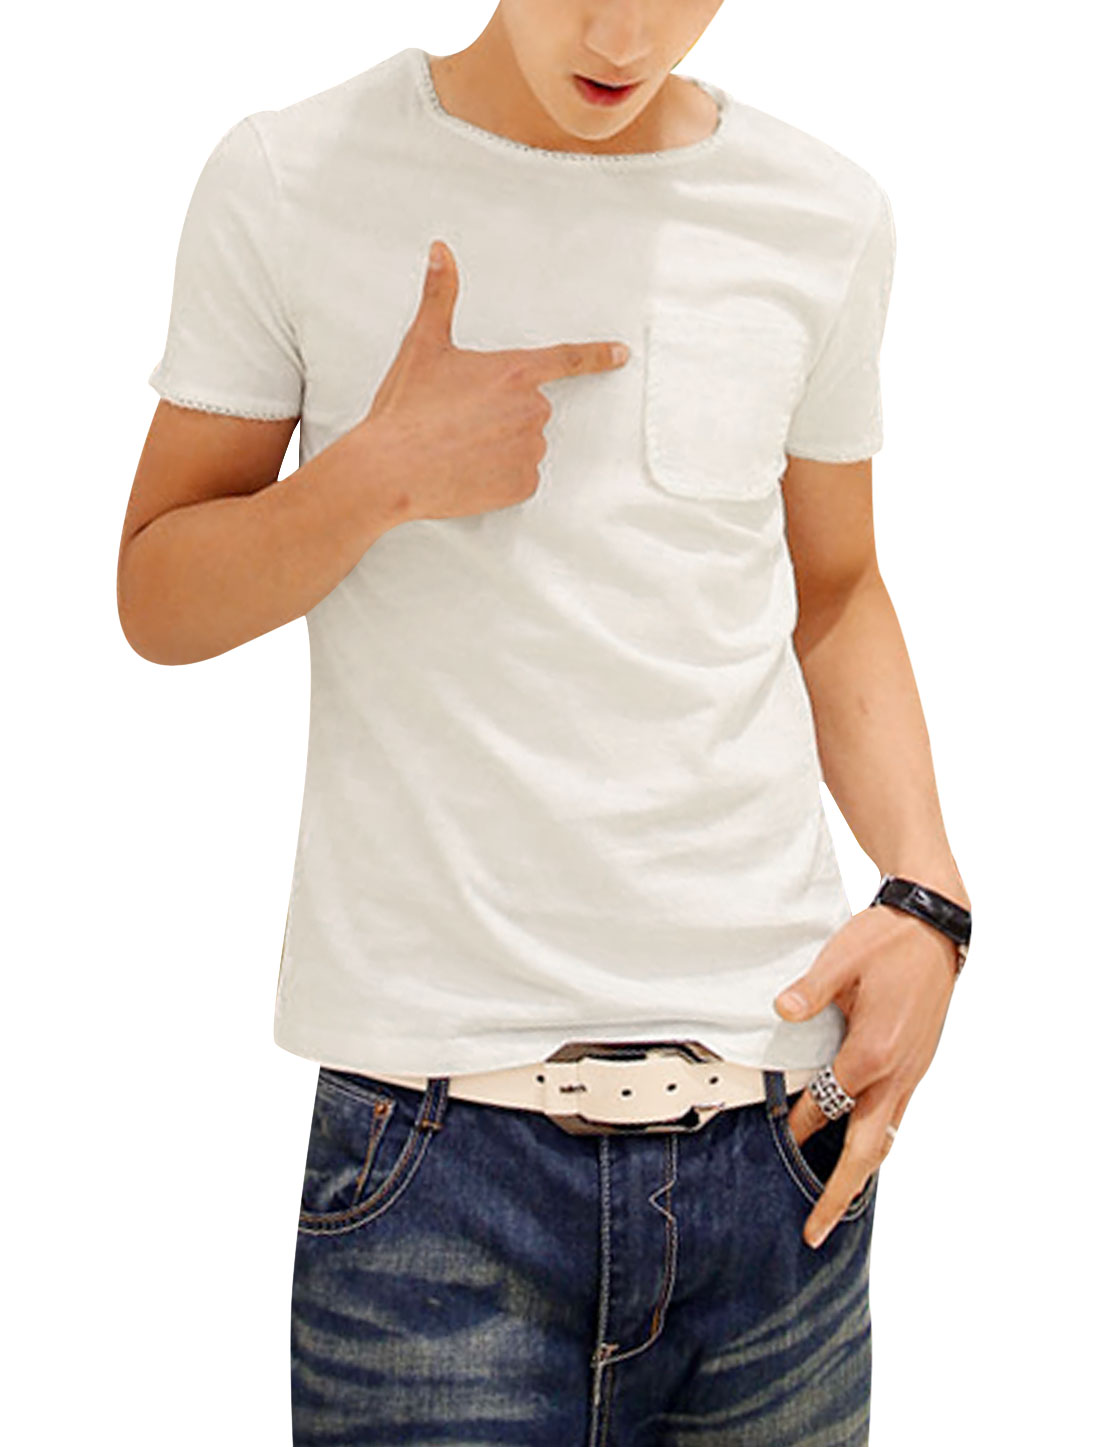 Men Chic Slipover Round Neck Stitched Detail Tee Shirt White S